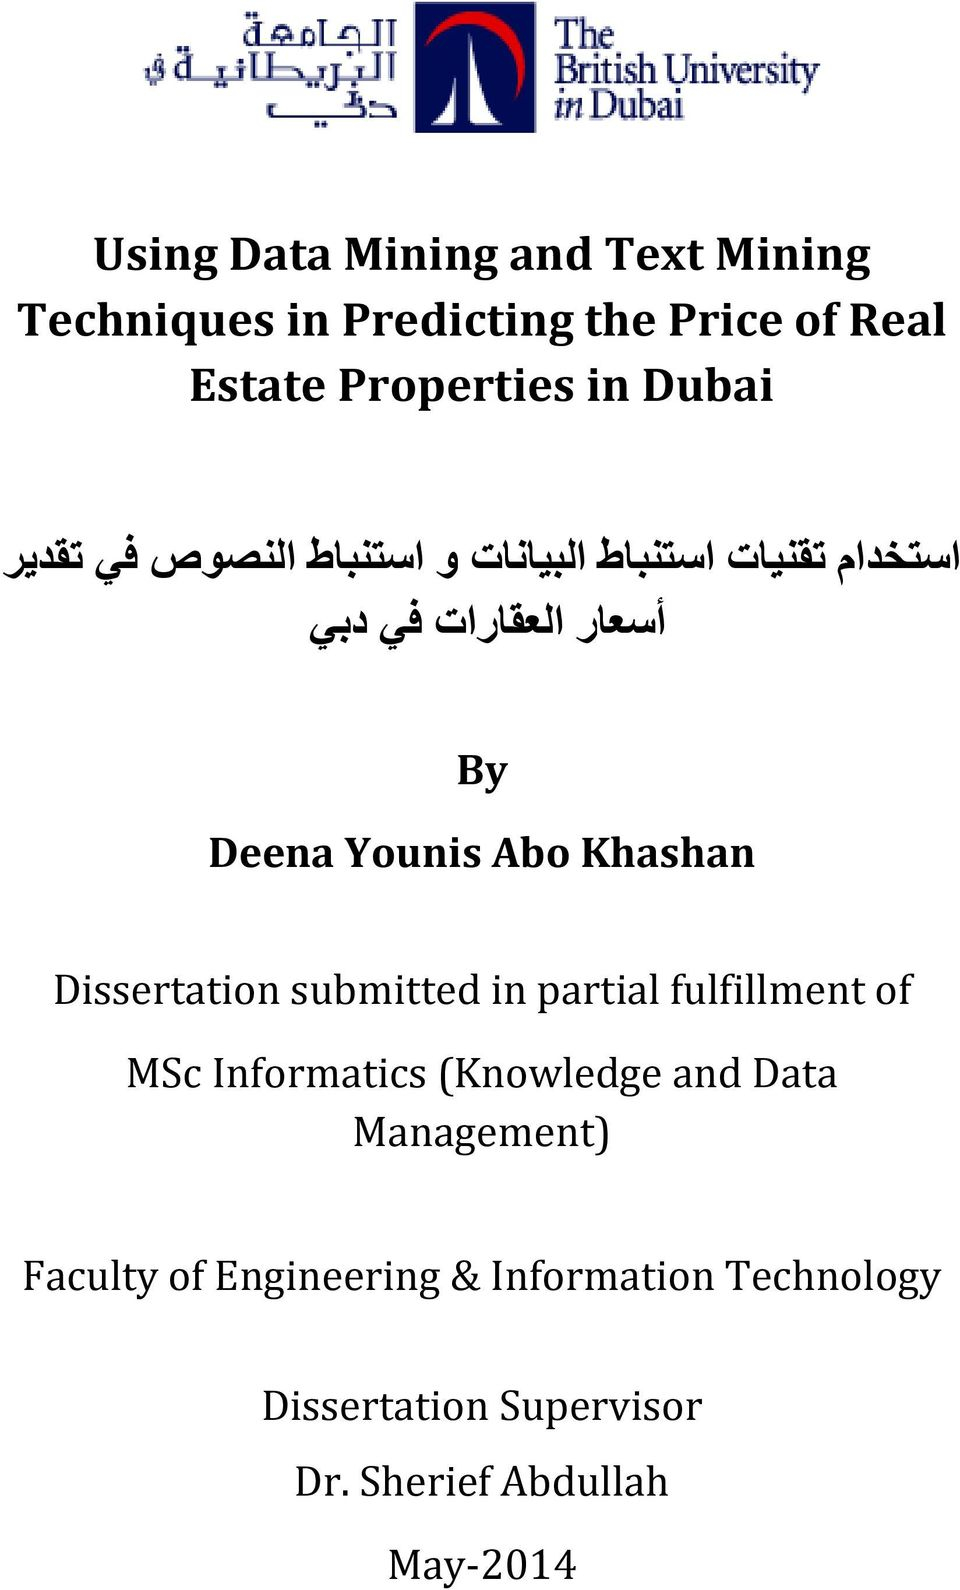 phd thesis on data warehousing Master thesis in data warehousing - entrust your paper to qualified scholars working in the platform diversify the way you fulfill your assignment with our time-tested service leave behind those sleepless nights working on your essay with our custom writing help.